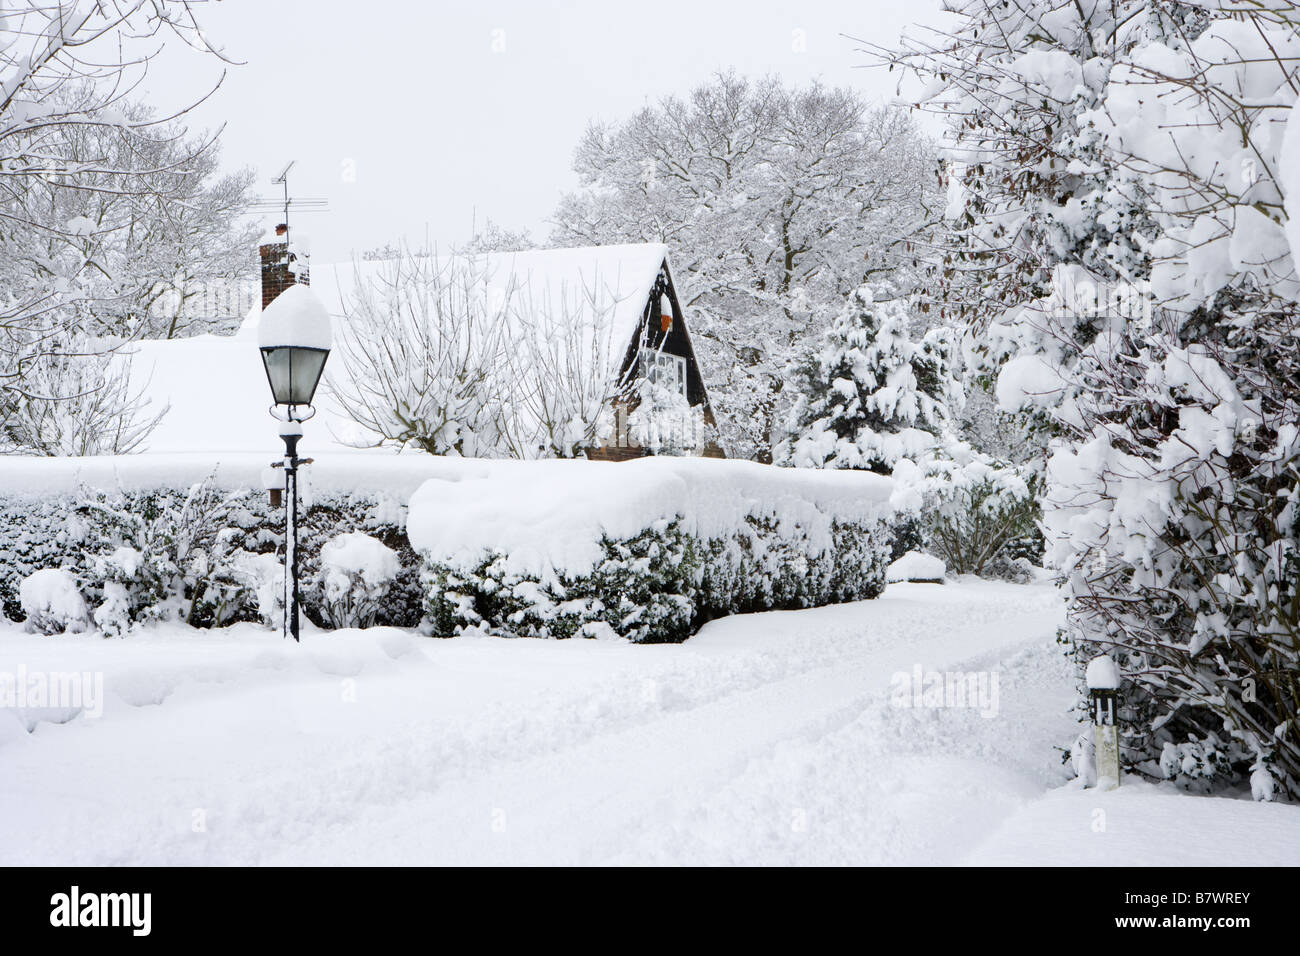 Residential road after heavy snow fall. Send, Surrey, UK - Stock Image